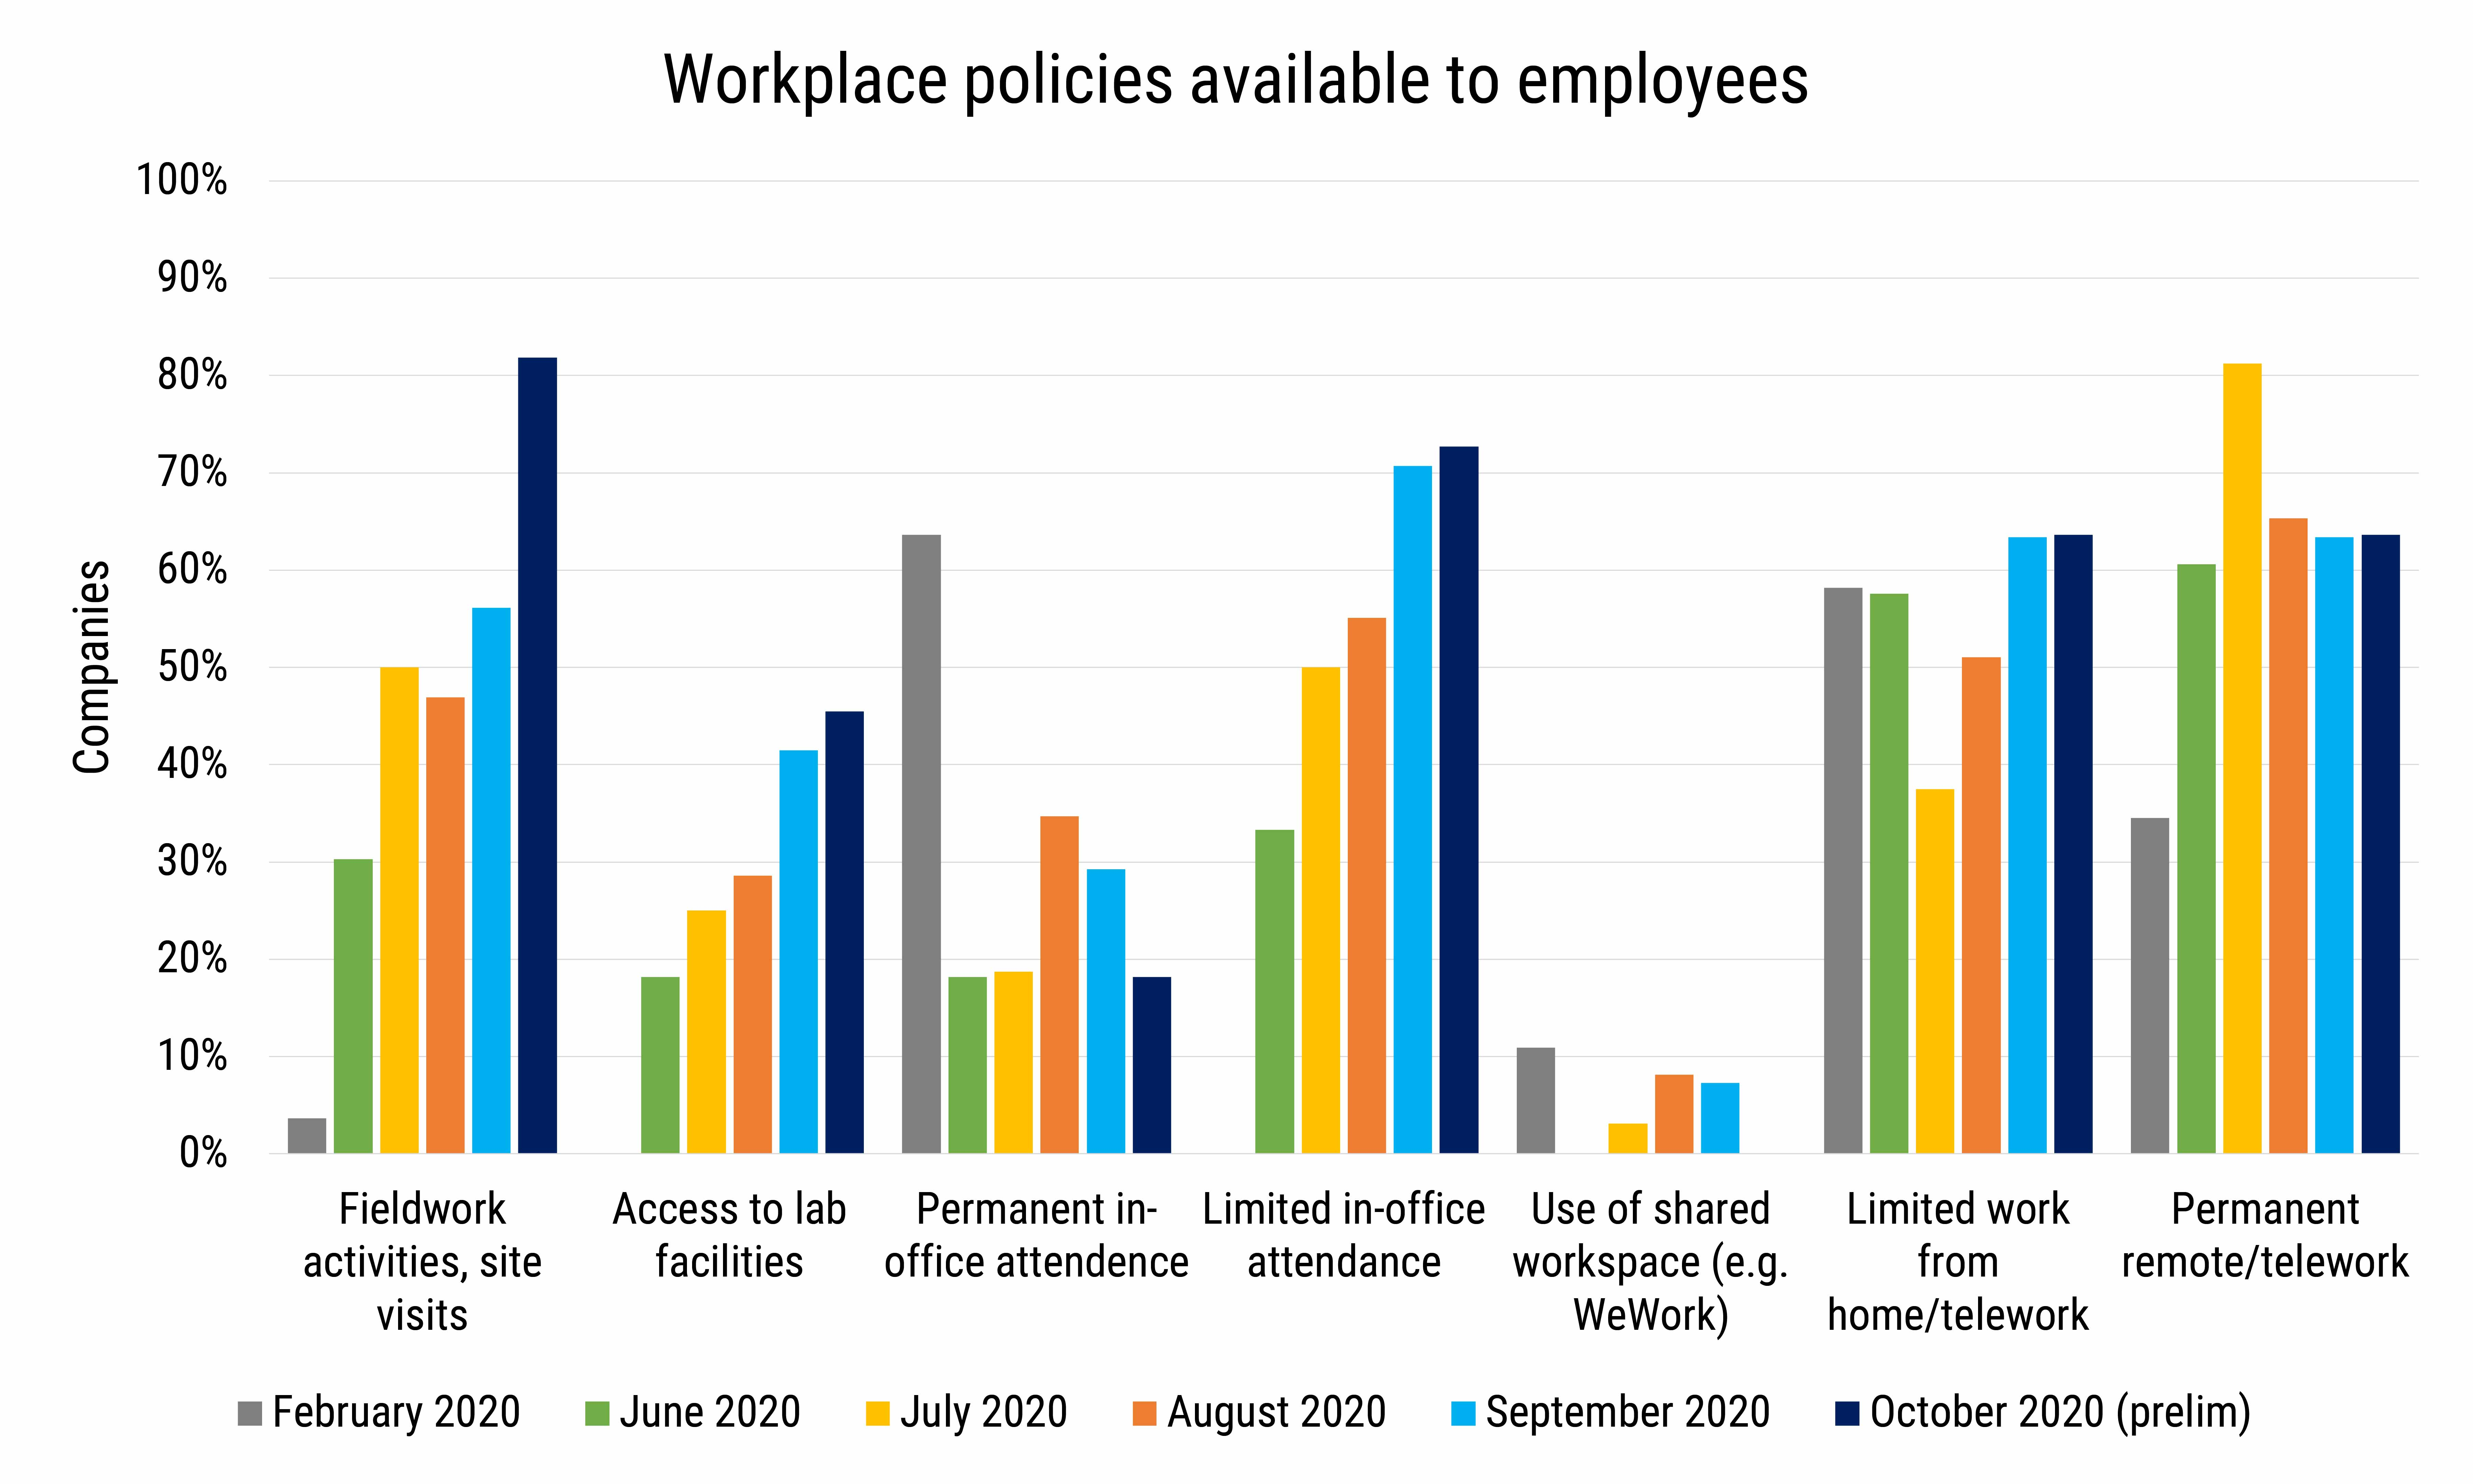 DB_2020-027 chart 07:  Workplace policies available to employees (Credit: AGI; data from AGI's Geoscience COVID-19 Survey)